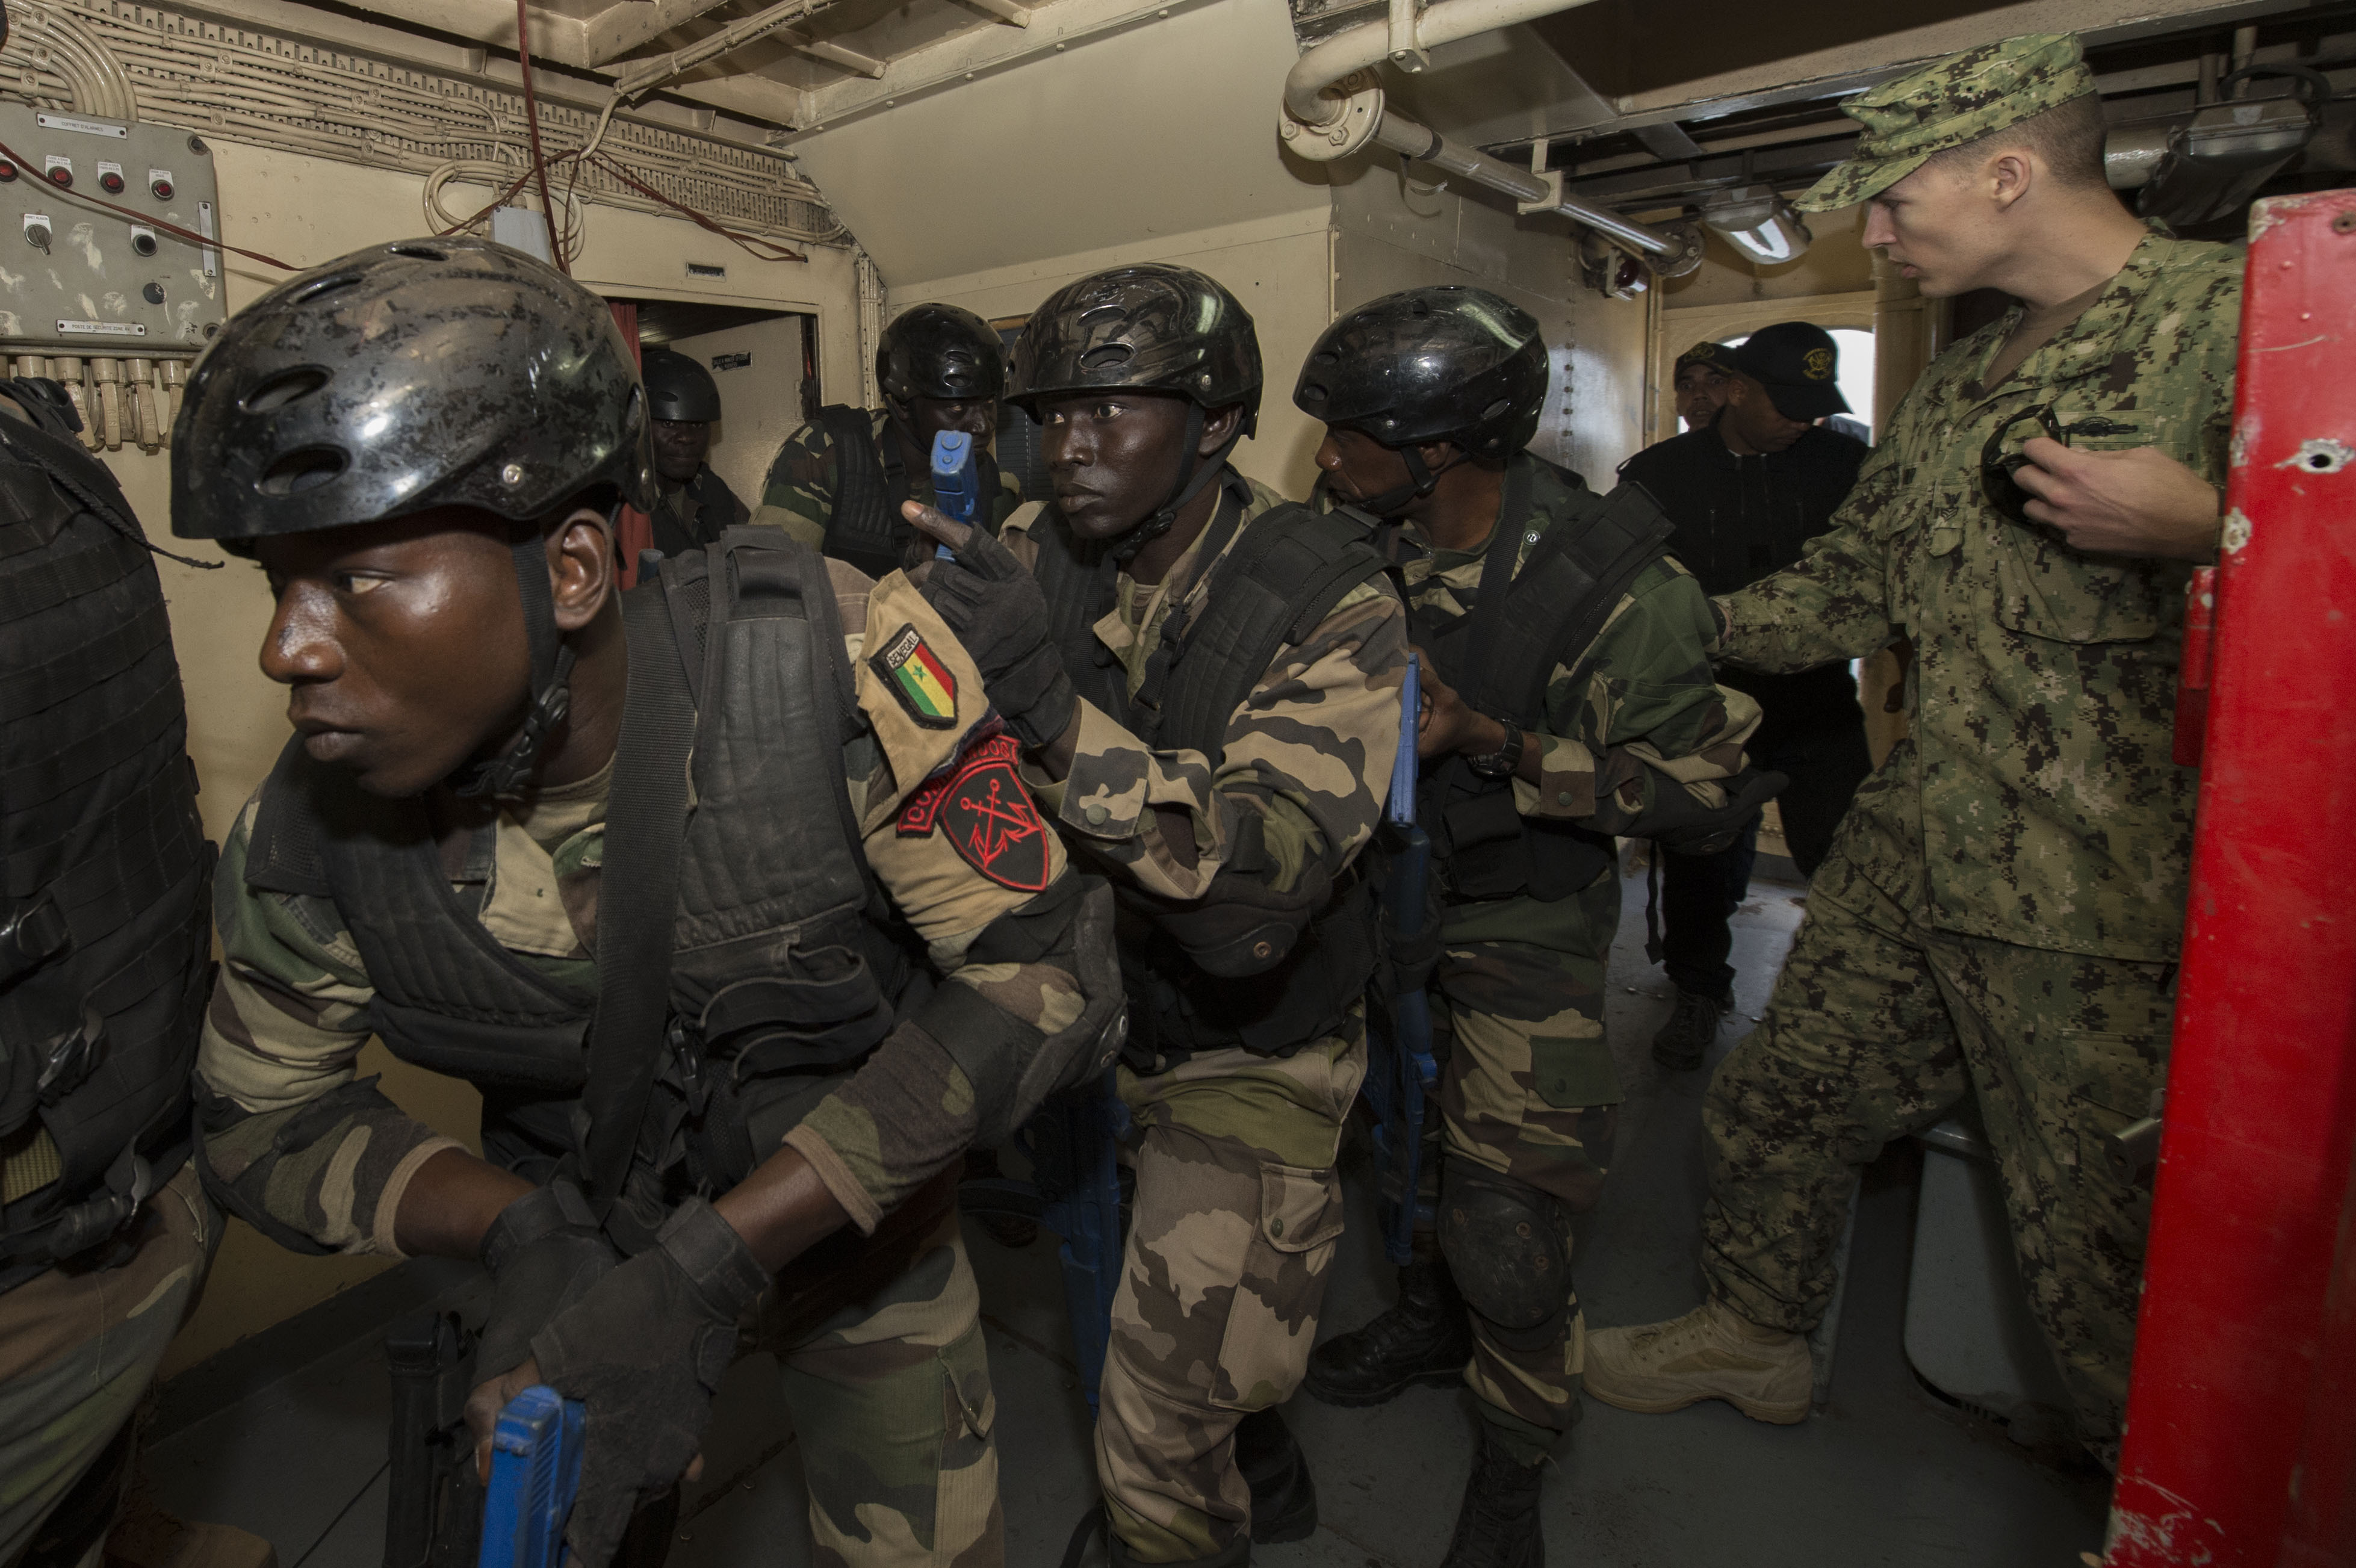 160315-N-ZE250-049 DAKAR, Senegal (March 15, 2016) U.S. Navy and Senegalese navy sailors conduct visit, board, search and seizure training aboard the Senegalese naval vessel PHM Njambuur during Obangame/Saharan Express 2016 (OESE16) in Dakar, Senegal, March 15, 2016. OESE16, one of three African regional express series exercises facilitated by U.S. Naval Forces Europe-Africa/U.S. 6th Fleet, seeks to increase regional cooperation, maritime domain awareness, information sharing practices and improve interoperability among participating forces in order to enhance maritime security and regional economic stability. (U.S. Navy photo by Mass Communication Specialist 3rd Class Weston Jones/Released)